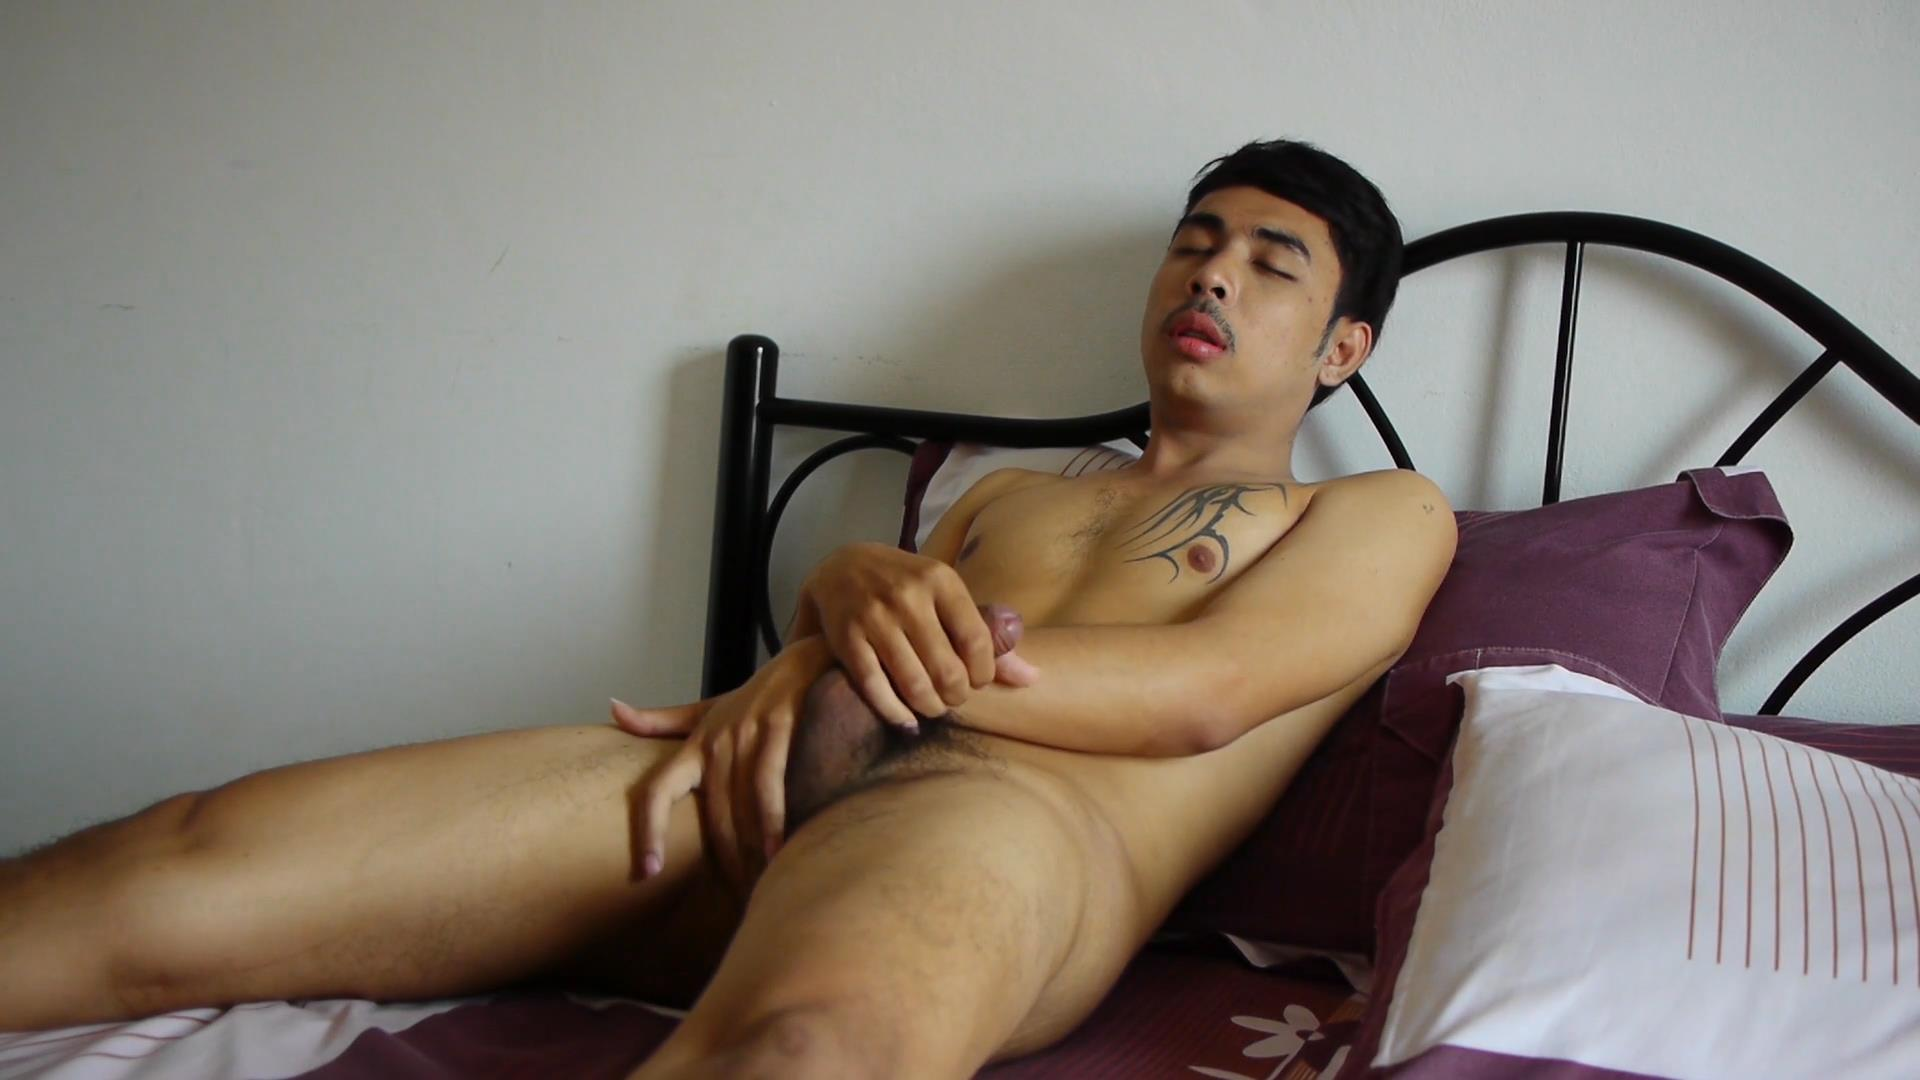 Asia-Boy-Kai-Asian-Twink-Jerking-Big-Uncut-Cock-Amateur-Gay-Porn-08 Asian Boy Kai Jerking His Big Uncut Asian Dick And Fingering His Ass